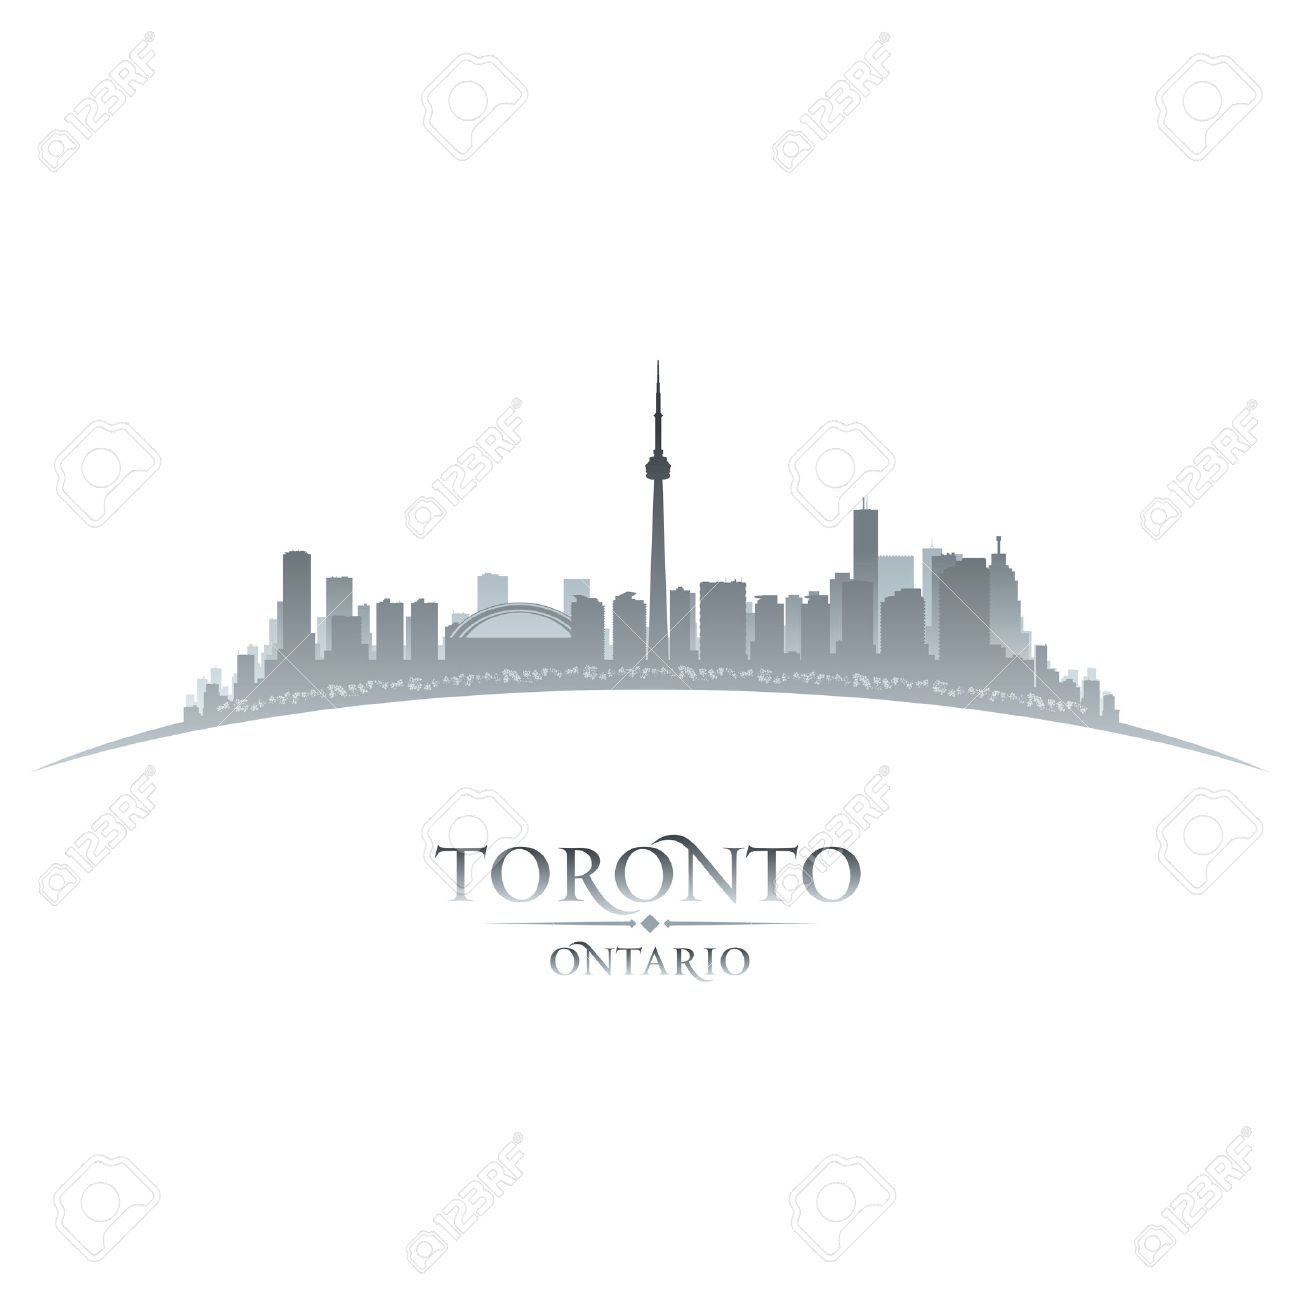 toronto skyline tattoos google search dozers pinterest skyline tattoo tattoo and tatting. Black Bedroom Furniture Sets. Home Design Ideas